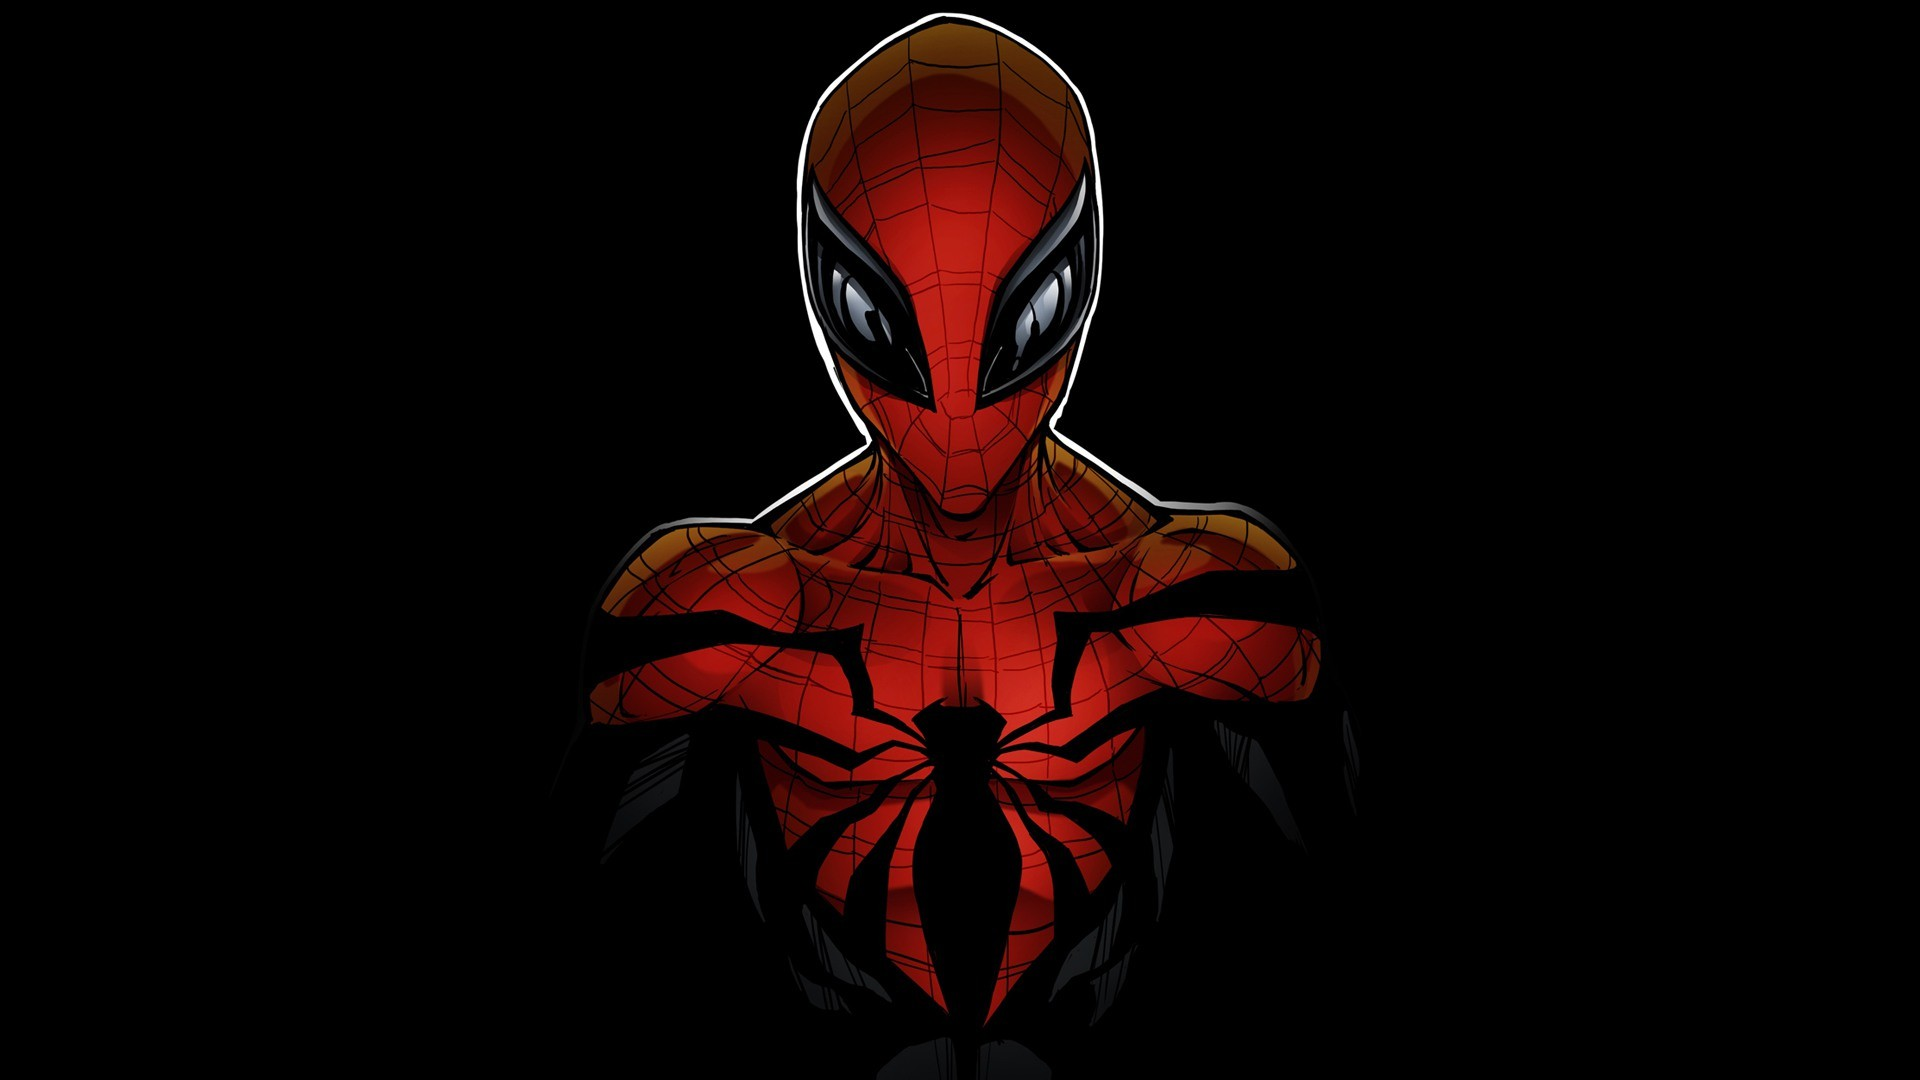 Res: 1920x1080, Spiderman Comic Wallpaper